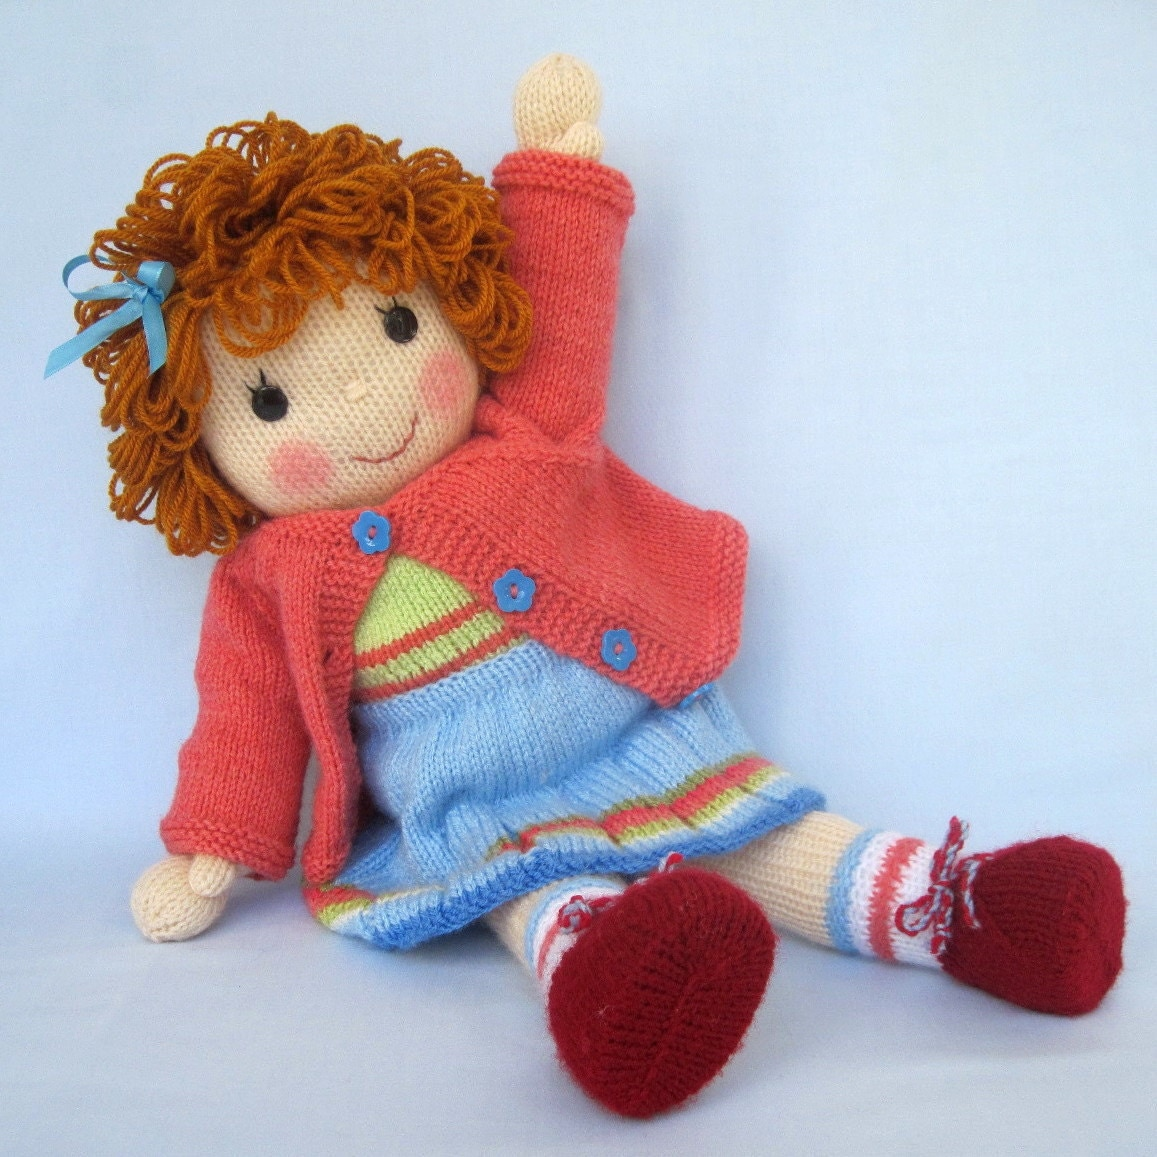 Free Knitted Doll Pattern : Trinas Trinketts: Etsy Finds Friday - Dollytime